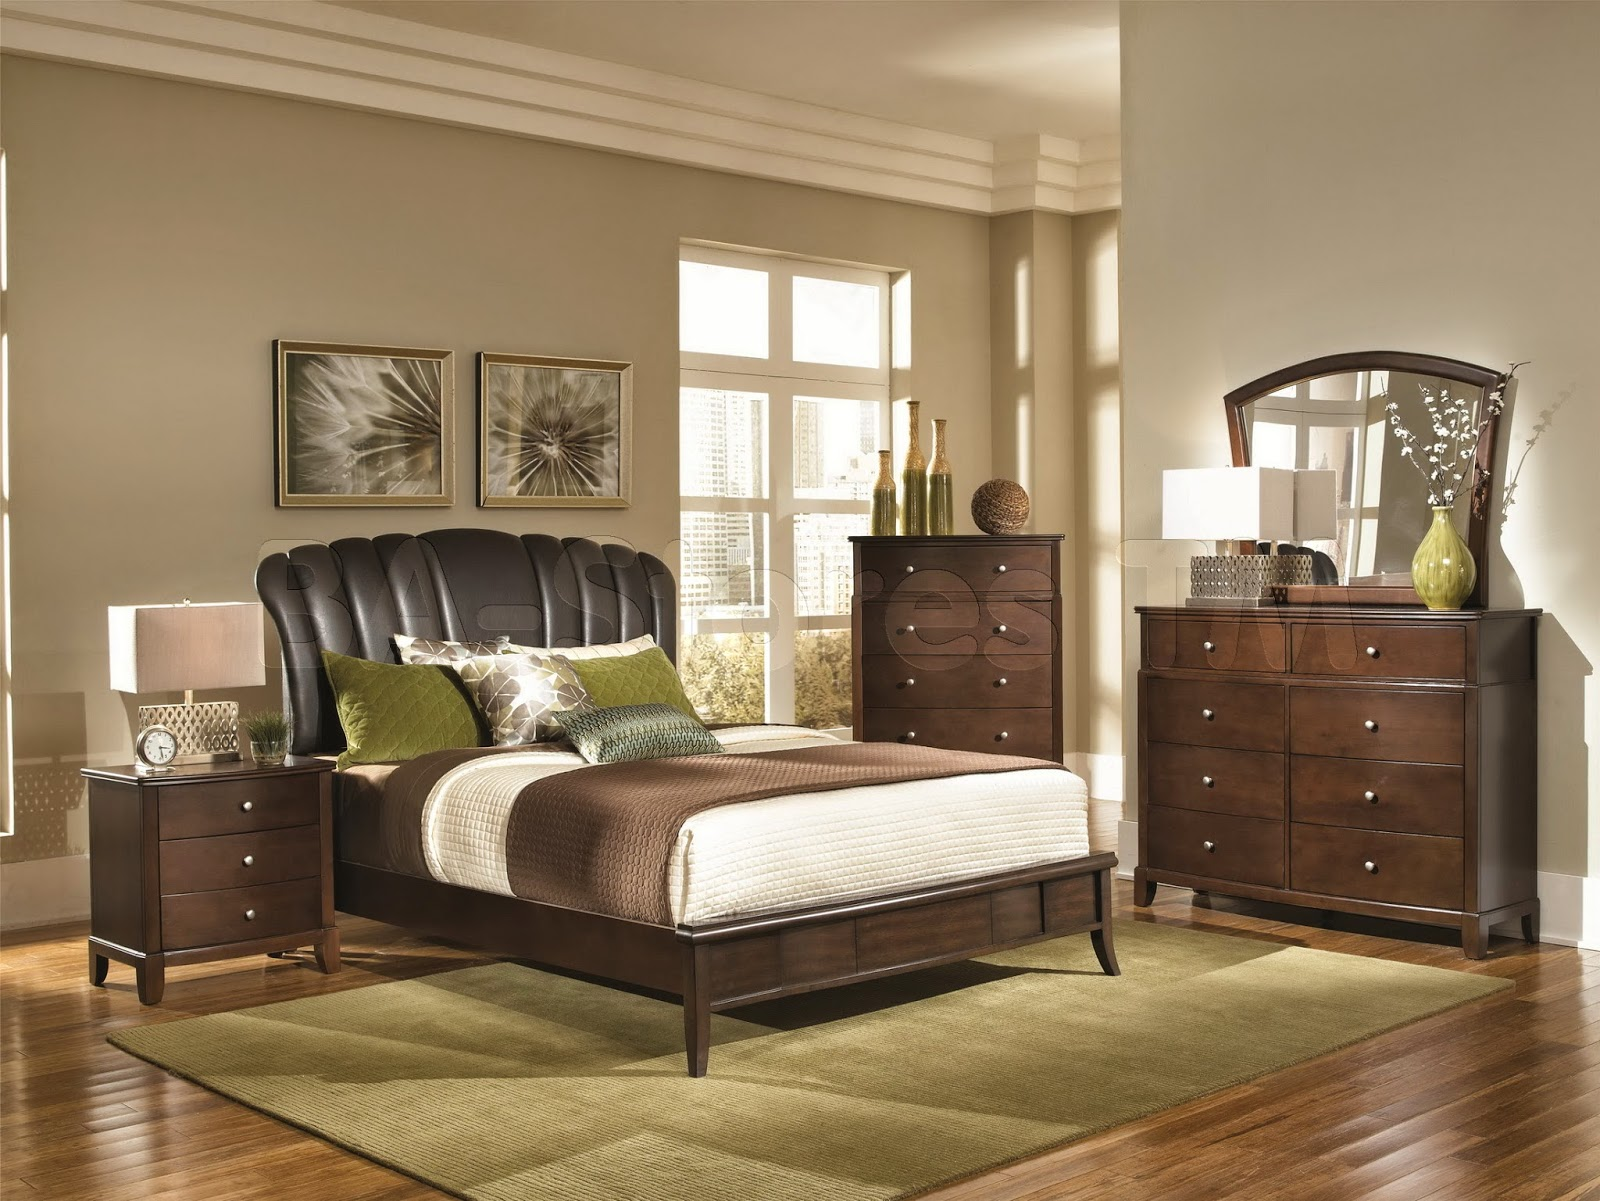 Tips On How To Create A French Country Style Bedroom